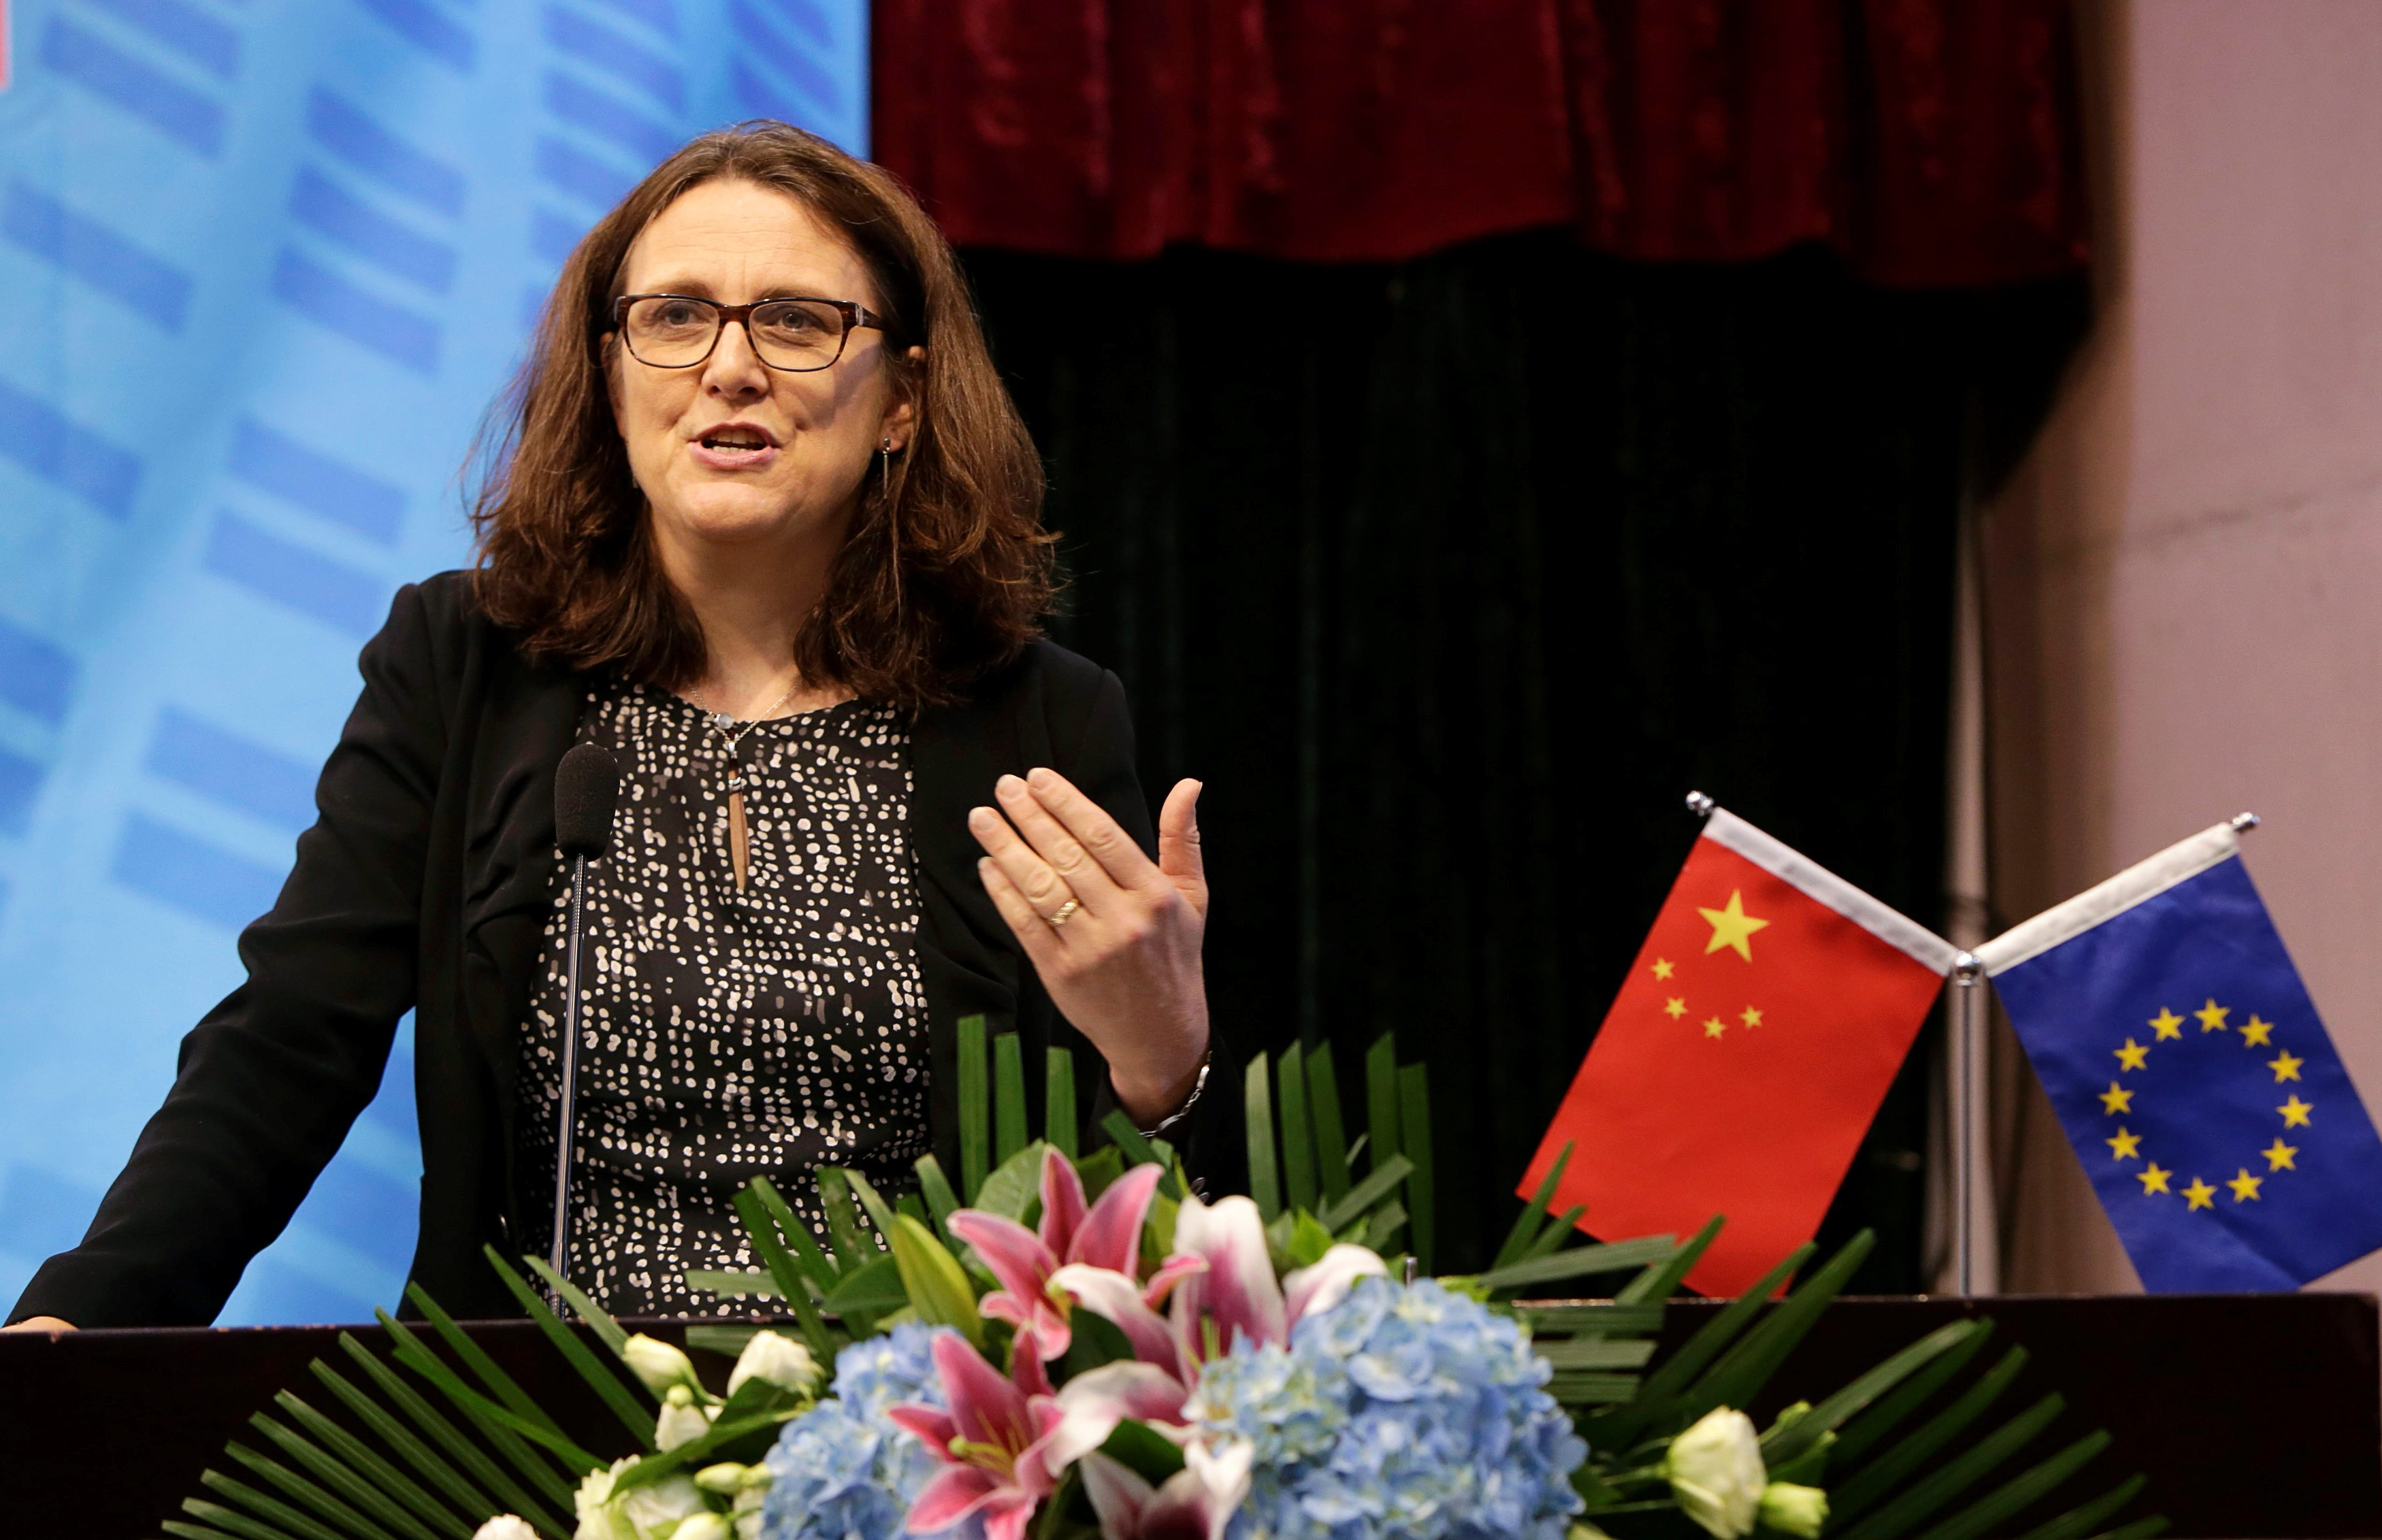 EU Trade Commissioner Cecilia Malmstrom delivers a keynote speech at Beijing's University of International Business and Economics in Beijing, China, July 11, 2016. REUTERS/Jason Lee - RTSHCBH